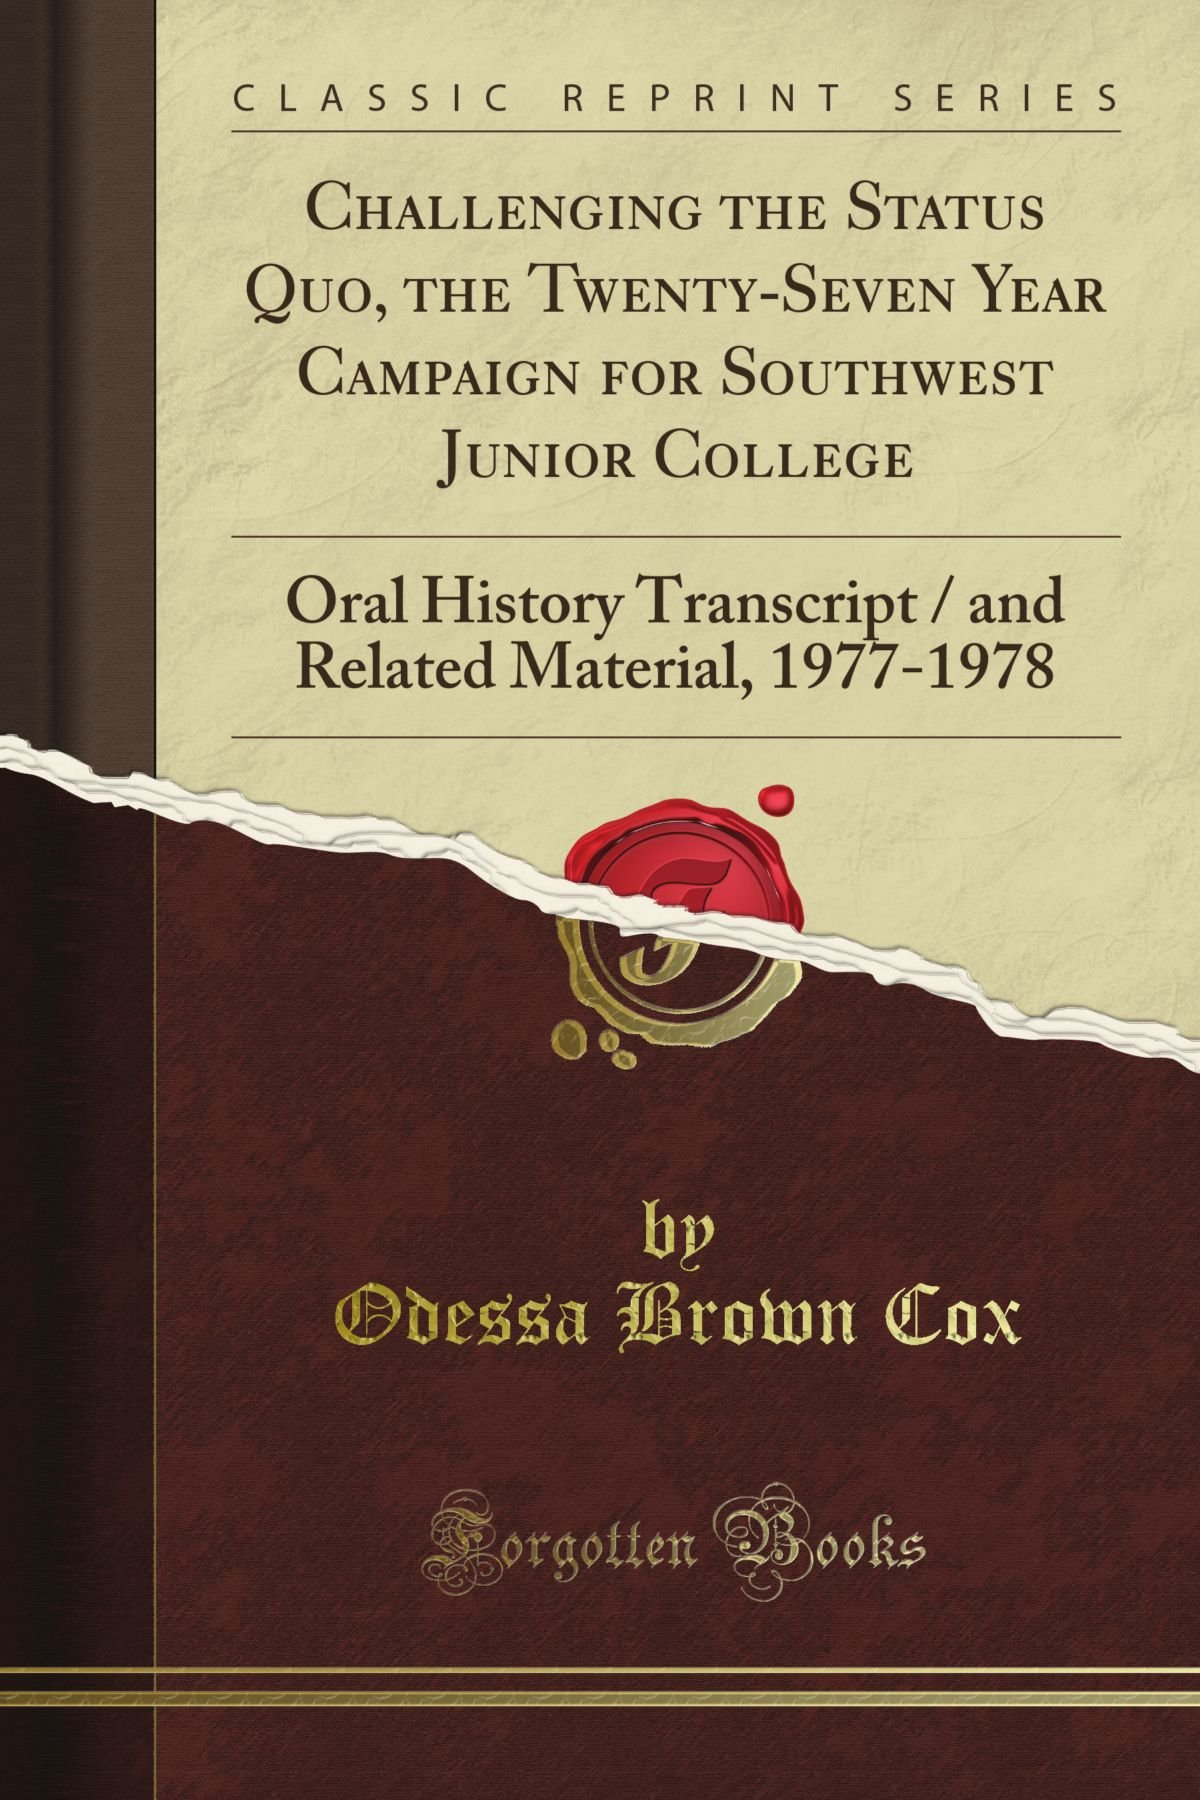 Challenging the Status Quo, the Twenty-Seven Year Campaign for Southwest Junior College: Oral History Transcript / and Related Material, 1977-1978 (Classic Reprint) ePub fb2 book